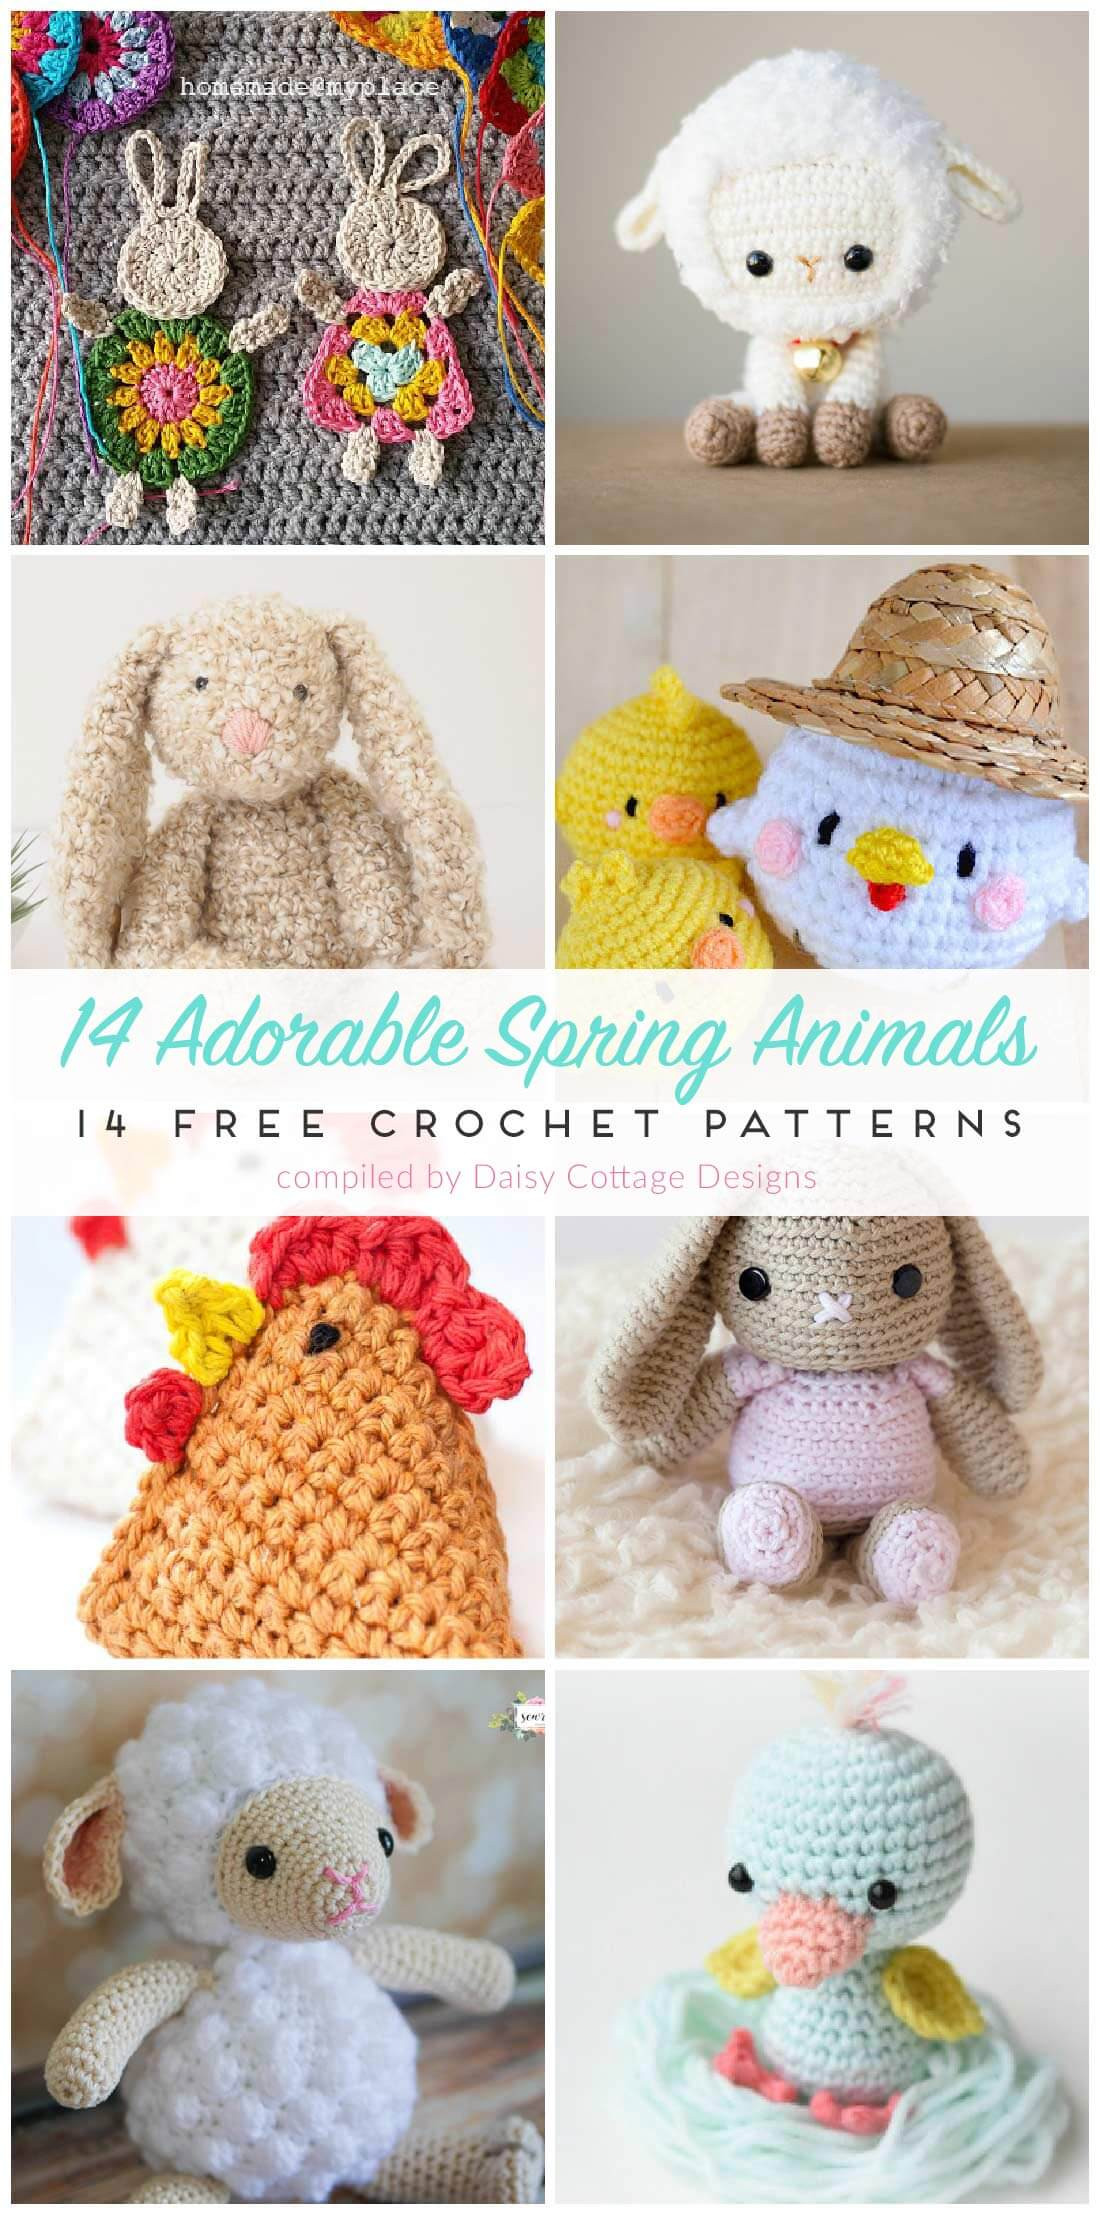 Crochet Animal Patterns Luxury Free Crochet Patterns for Spring Daisy Cottage Designs Of Incredible 48 Images Crochet Animal Patterns